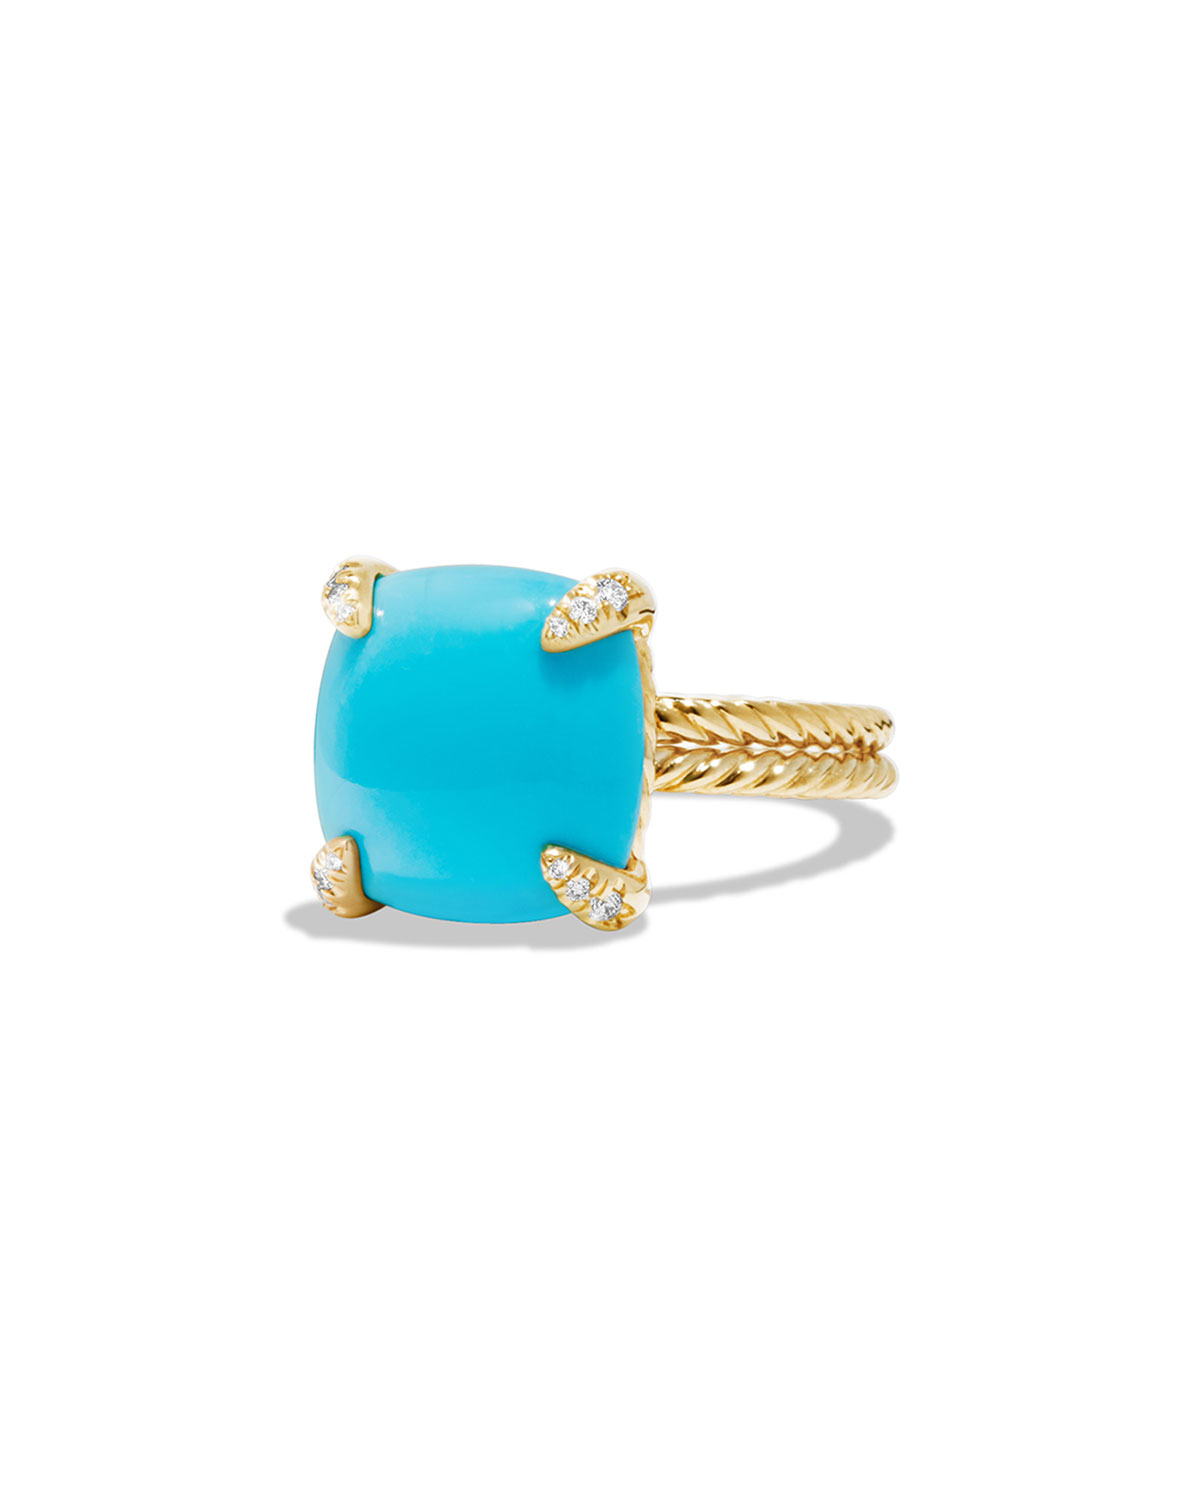 David Yurman Châtelaine 18k Gold 14mm Turquoise Ring w/ Diamonds, Size 6